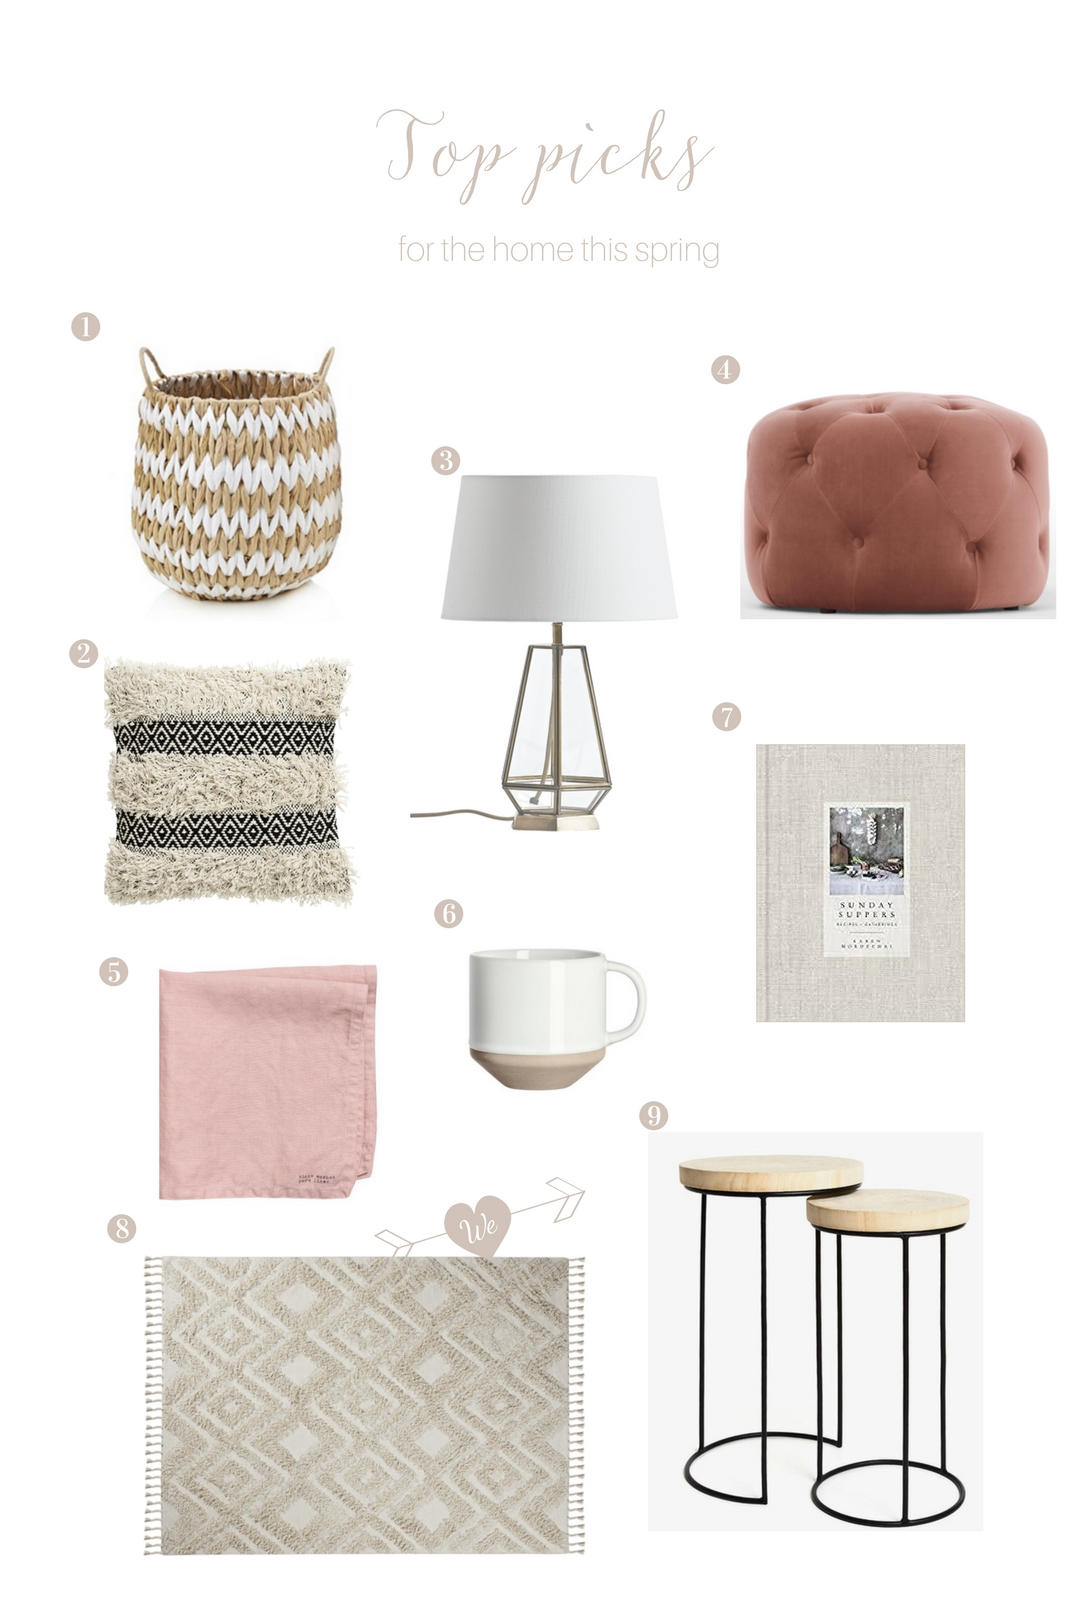 My top picks for the home this spring